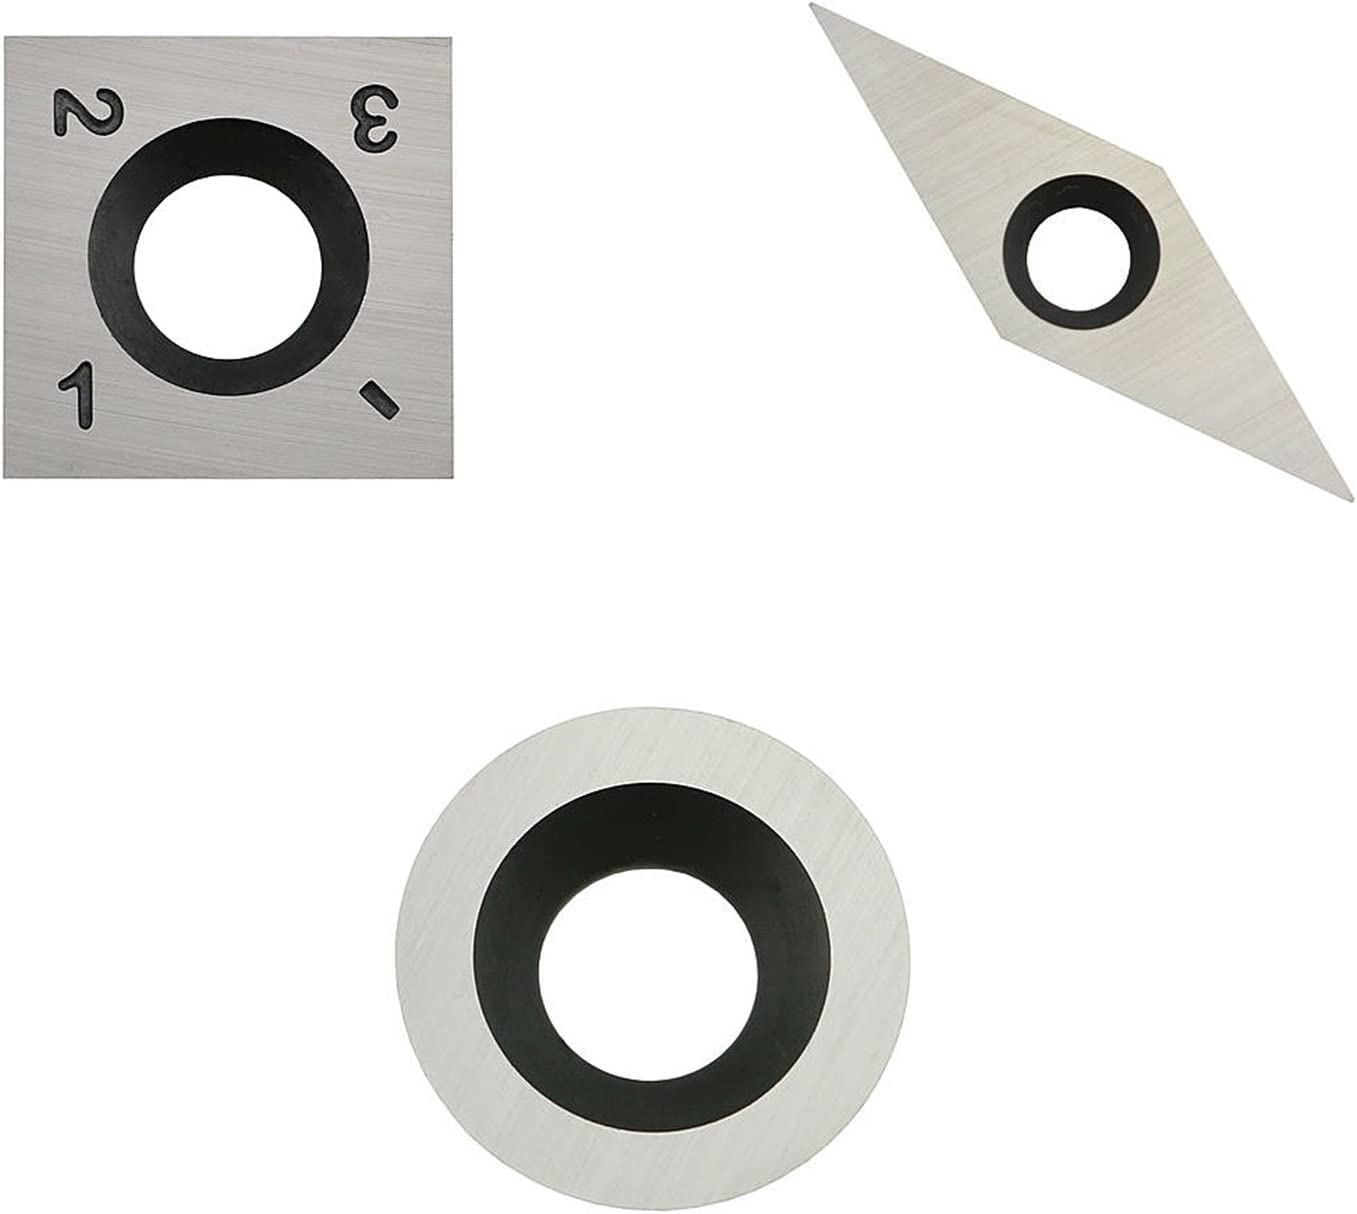 Round Carbide Replacement Cutter Insert 15mm For Woodturning Tools,3pcs